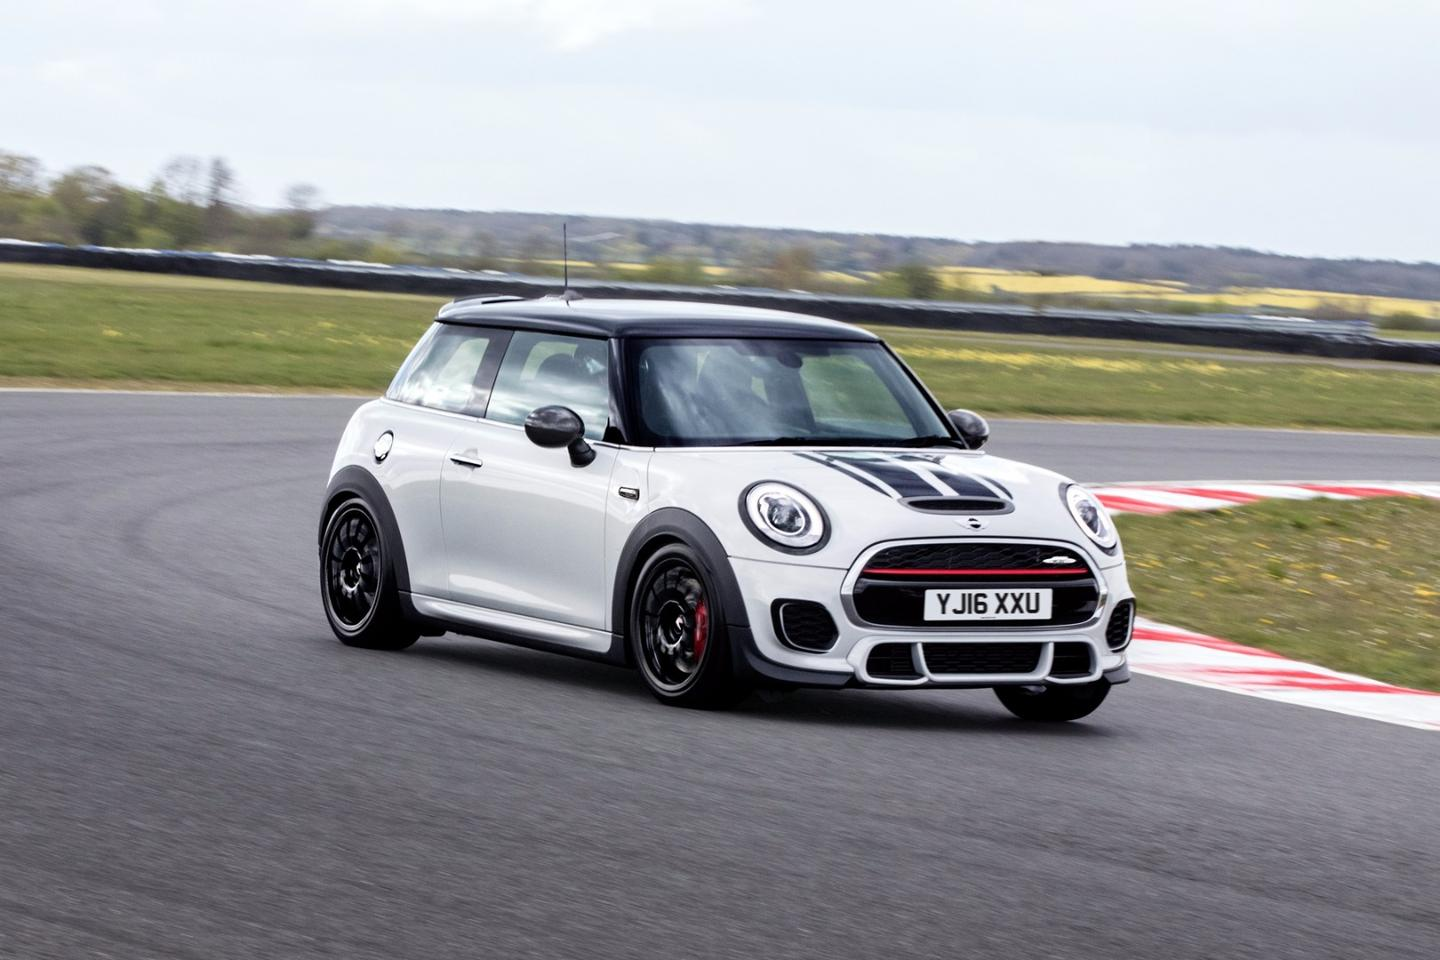 The John Cooper Works Challenge is based on the latest John Cooper Works Hatch